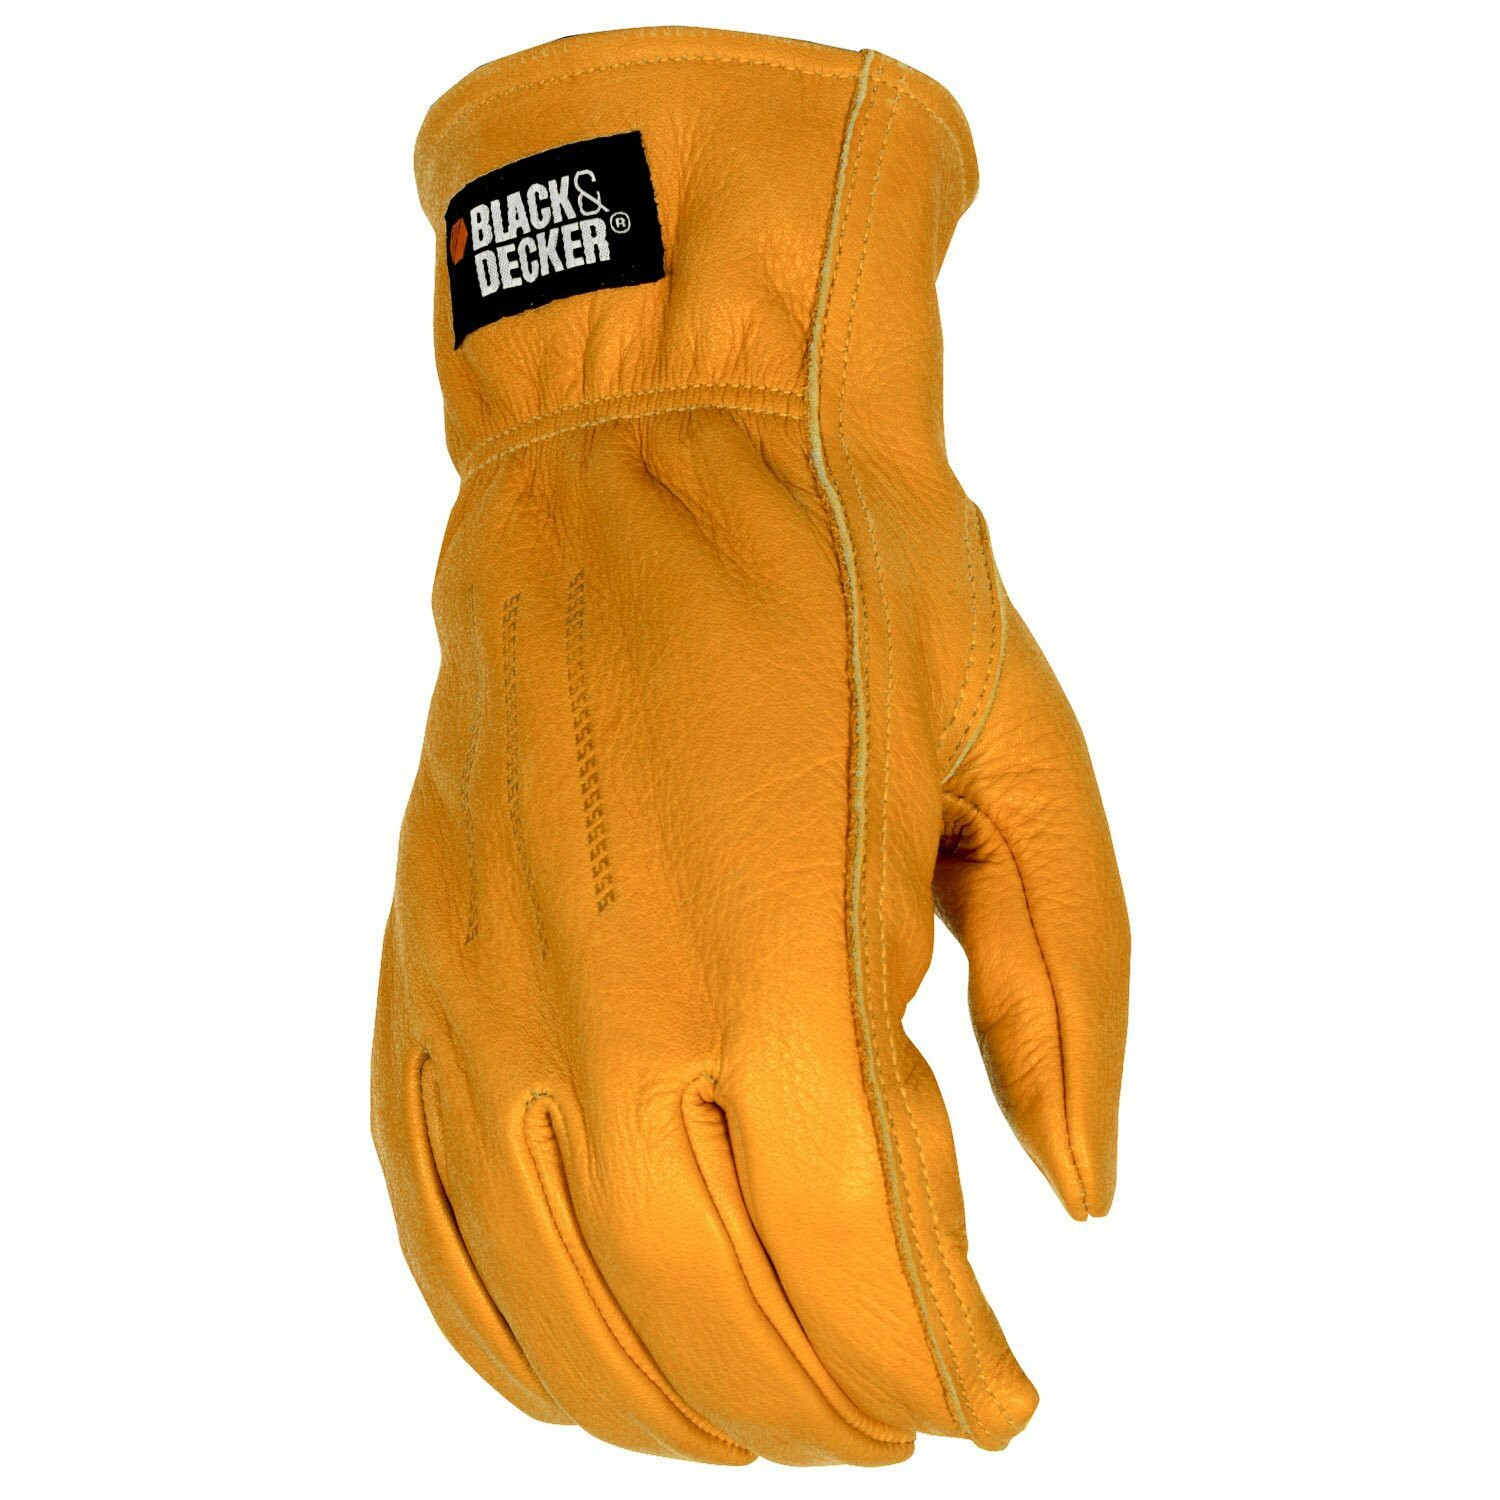 Black gloves online - Black Decker Leather Drivers Work Glove Drivers Gloves Gloves Online